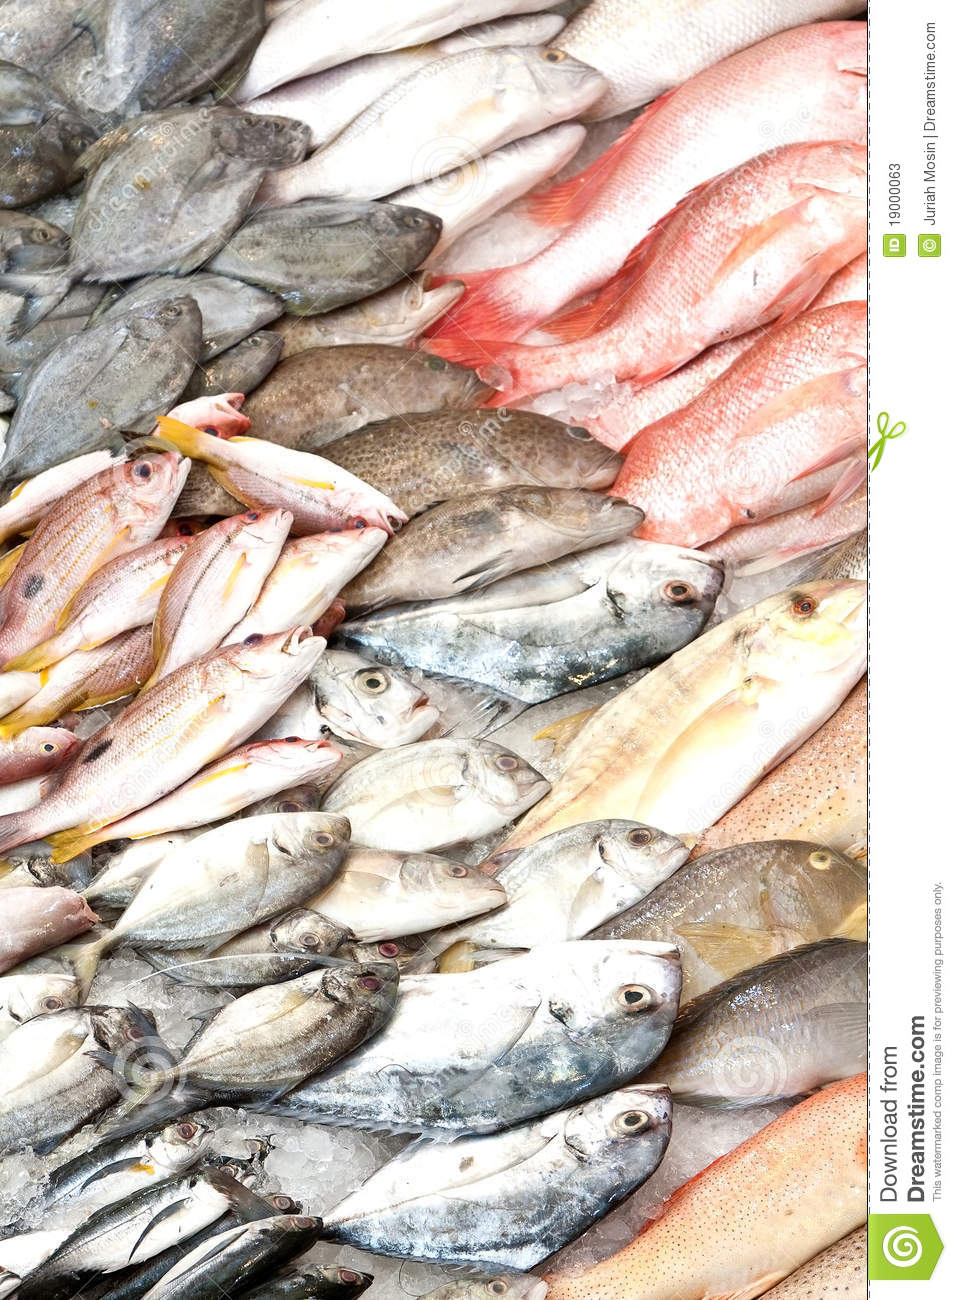 Fish in wet fish market stock photos image 19000063 for Is a fish wet